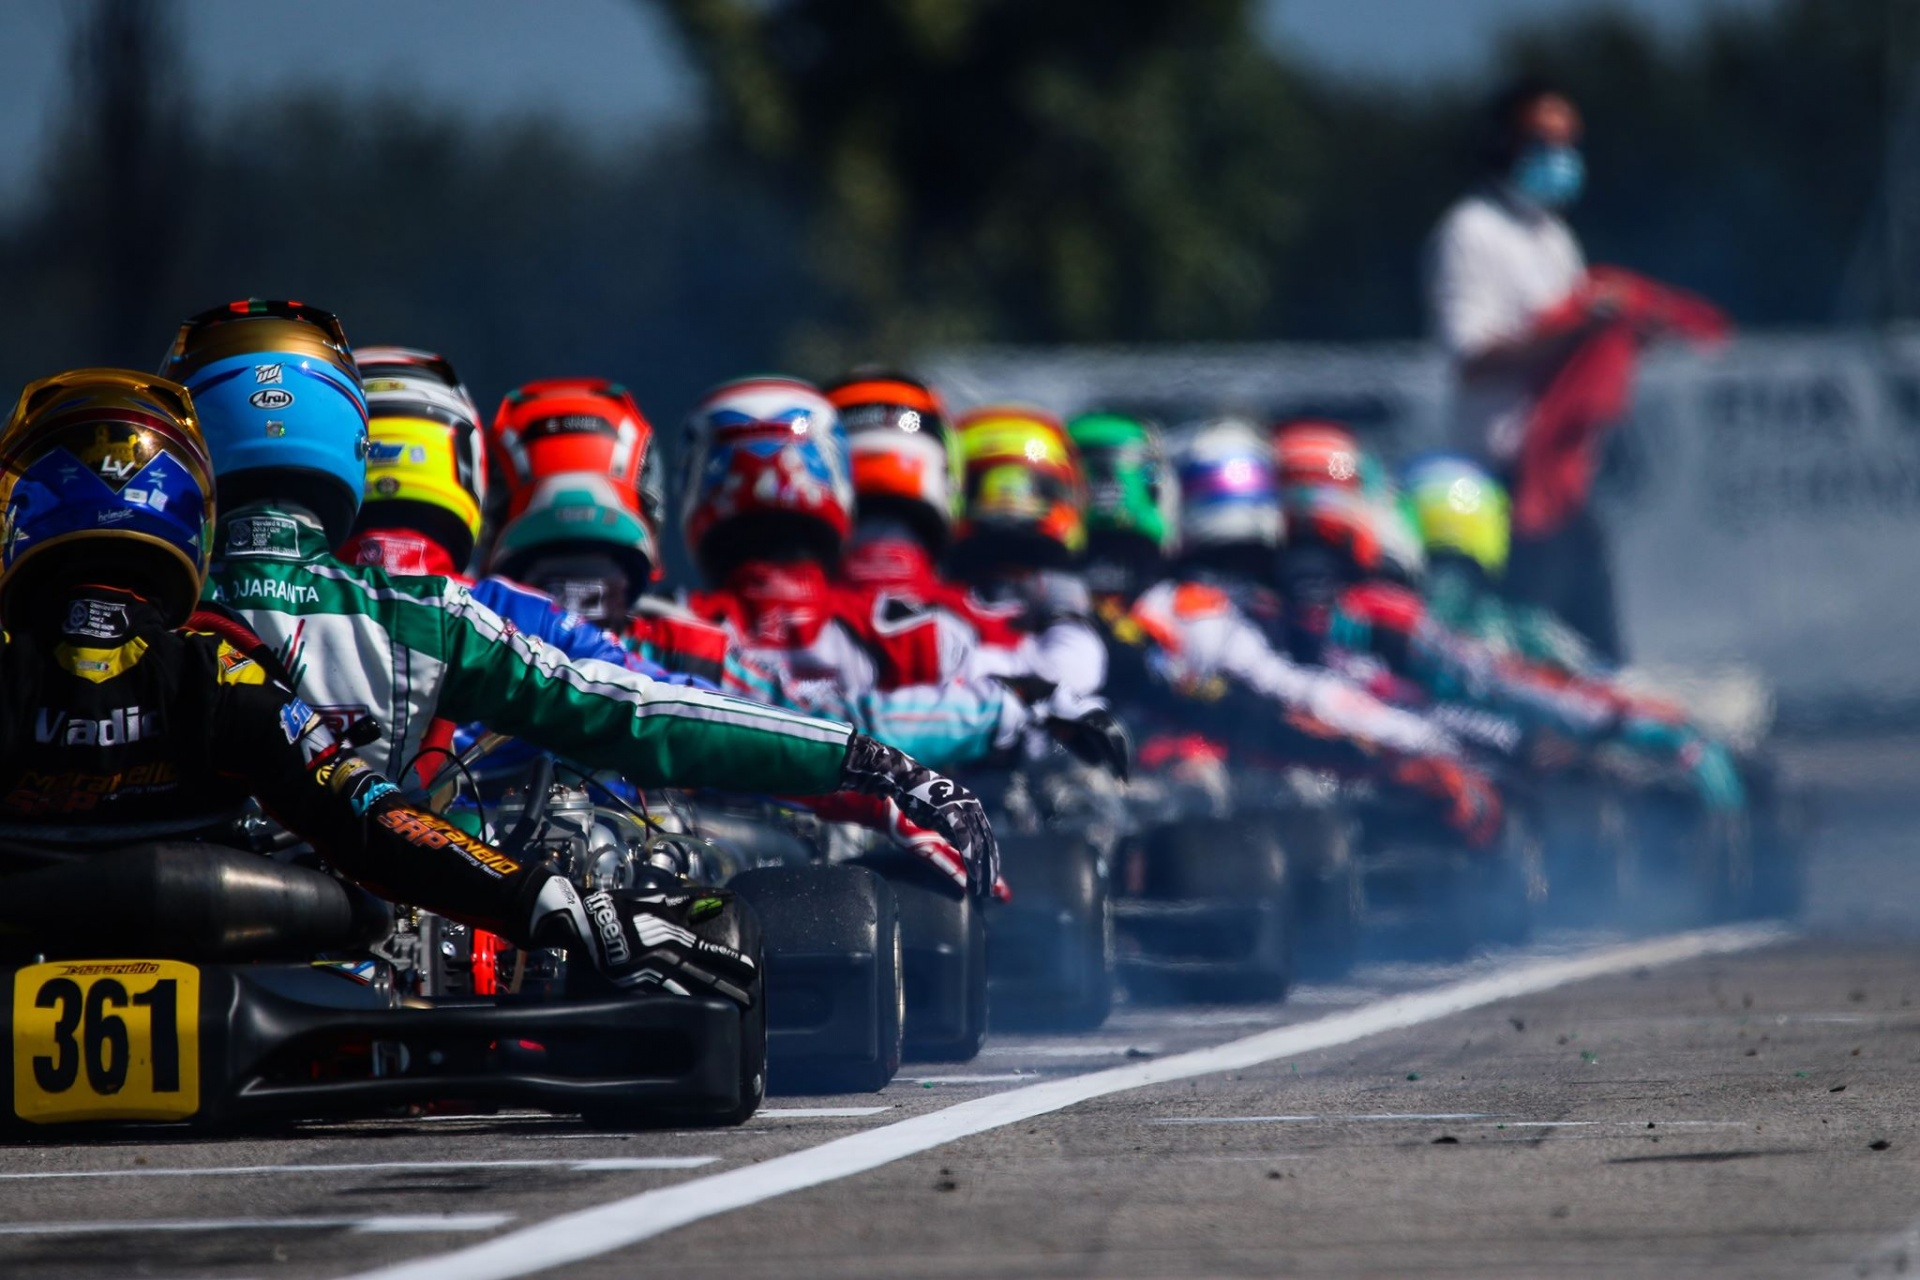 FIA Karting European Championship - The weekend report cards (Adria)